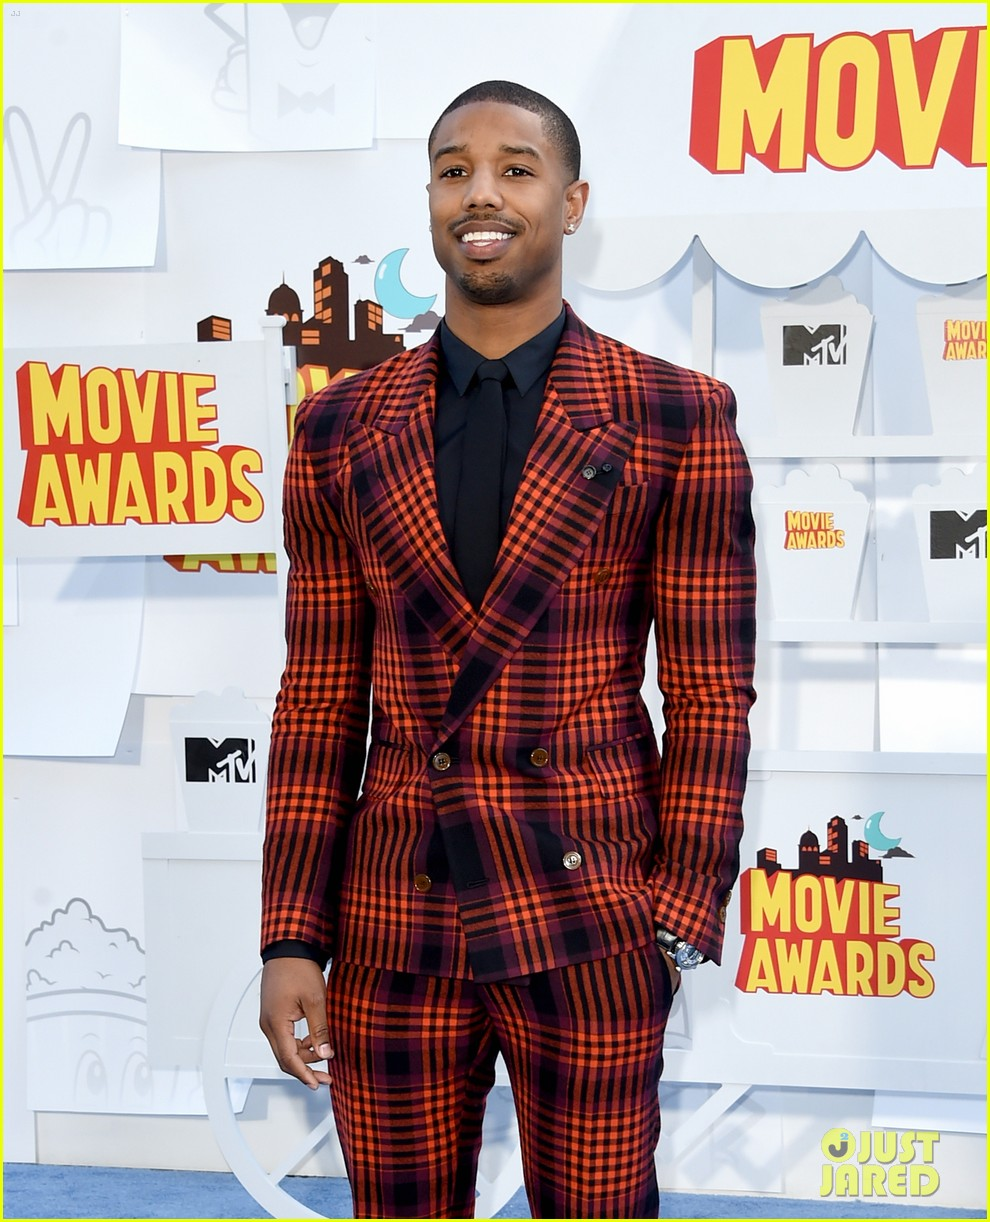 http://cdn01.cdn.justjared.com/wp-content/uploads/2015/04/fantastic-mtv/fantastic-four-mtv-movie-awards-2015-06.jpg